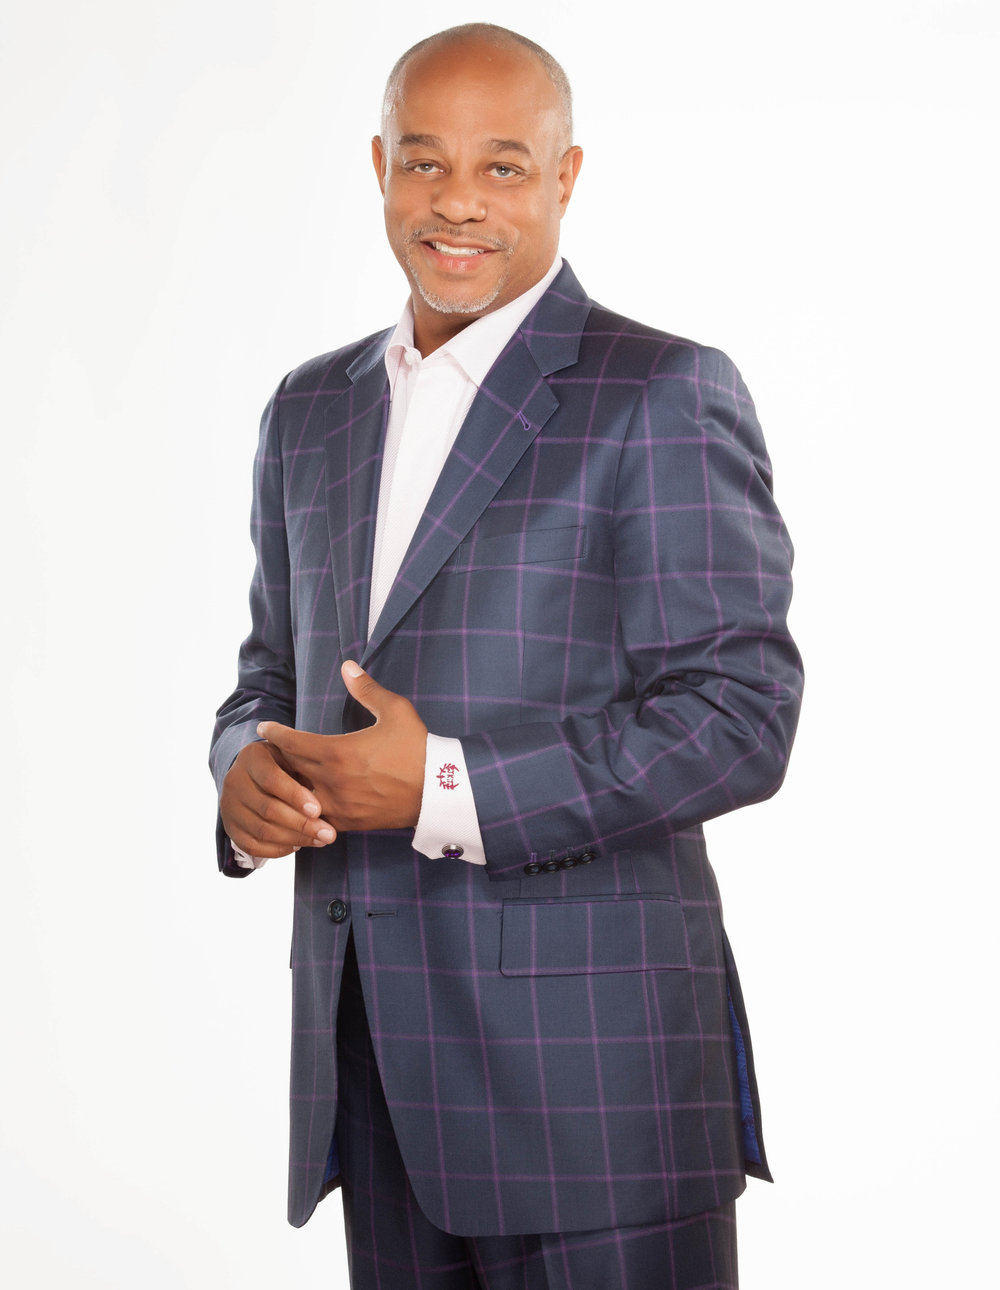 Friday, October 26, 2018 @7:30p - Pastor John K. Jenkins, Sr. of First Baptist Church of Glenarden will be our guest speaker. Service will be at our church.